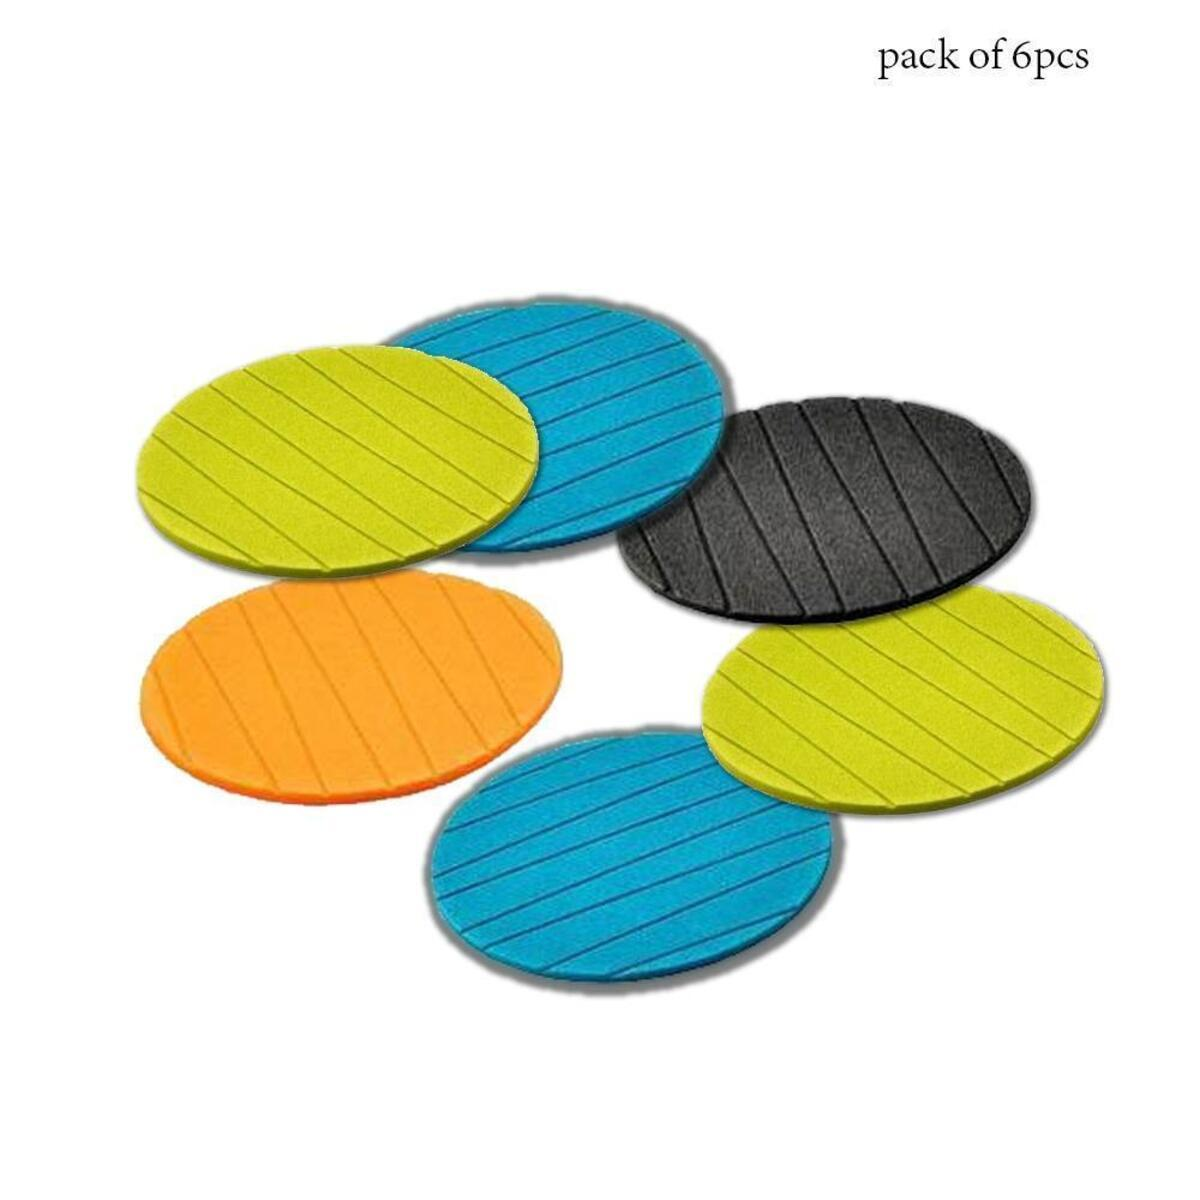 6 PCS USEFUL ROUND SHAPE PLAIN SILICONE CUP MAT COASTER DRINKING TEA COFFEE MUG WINE MAT FOR HOME - Maple Things